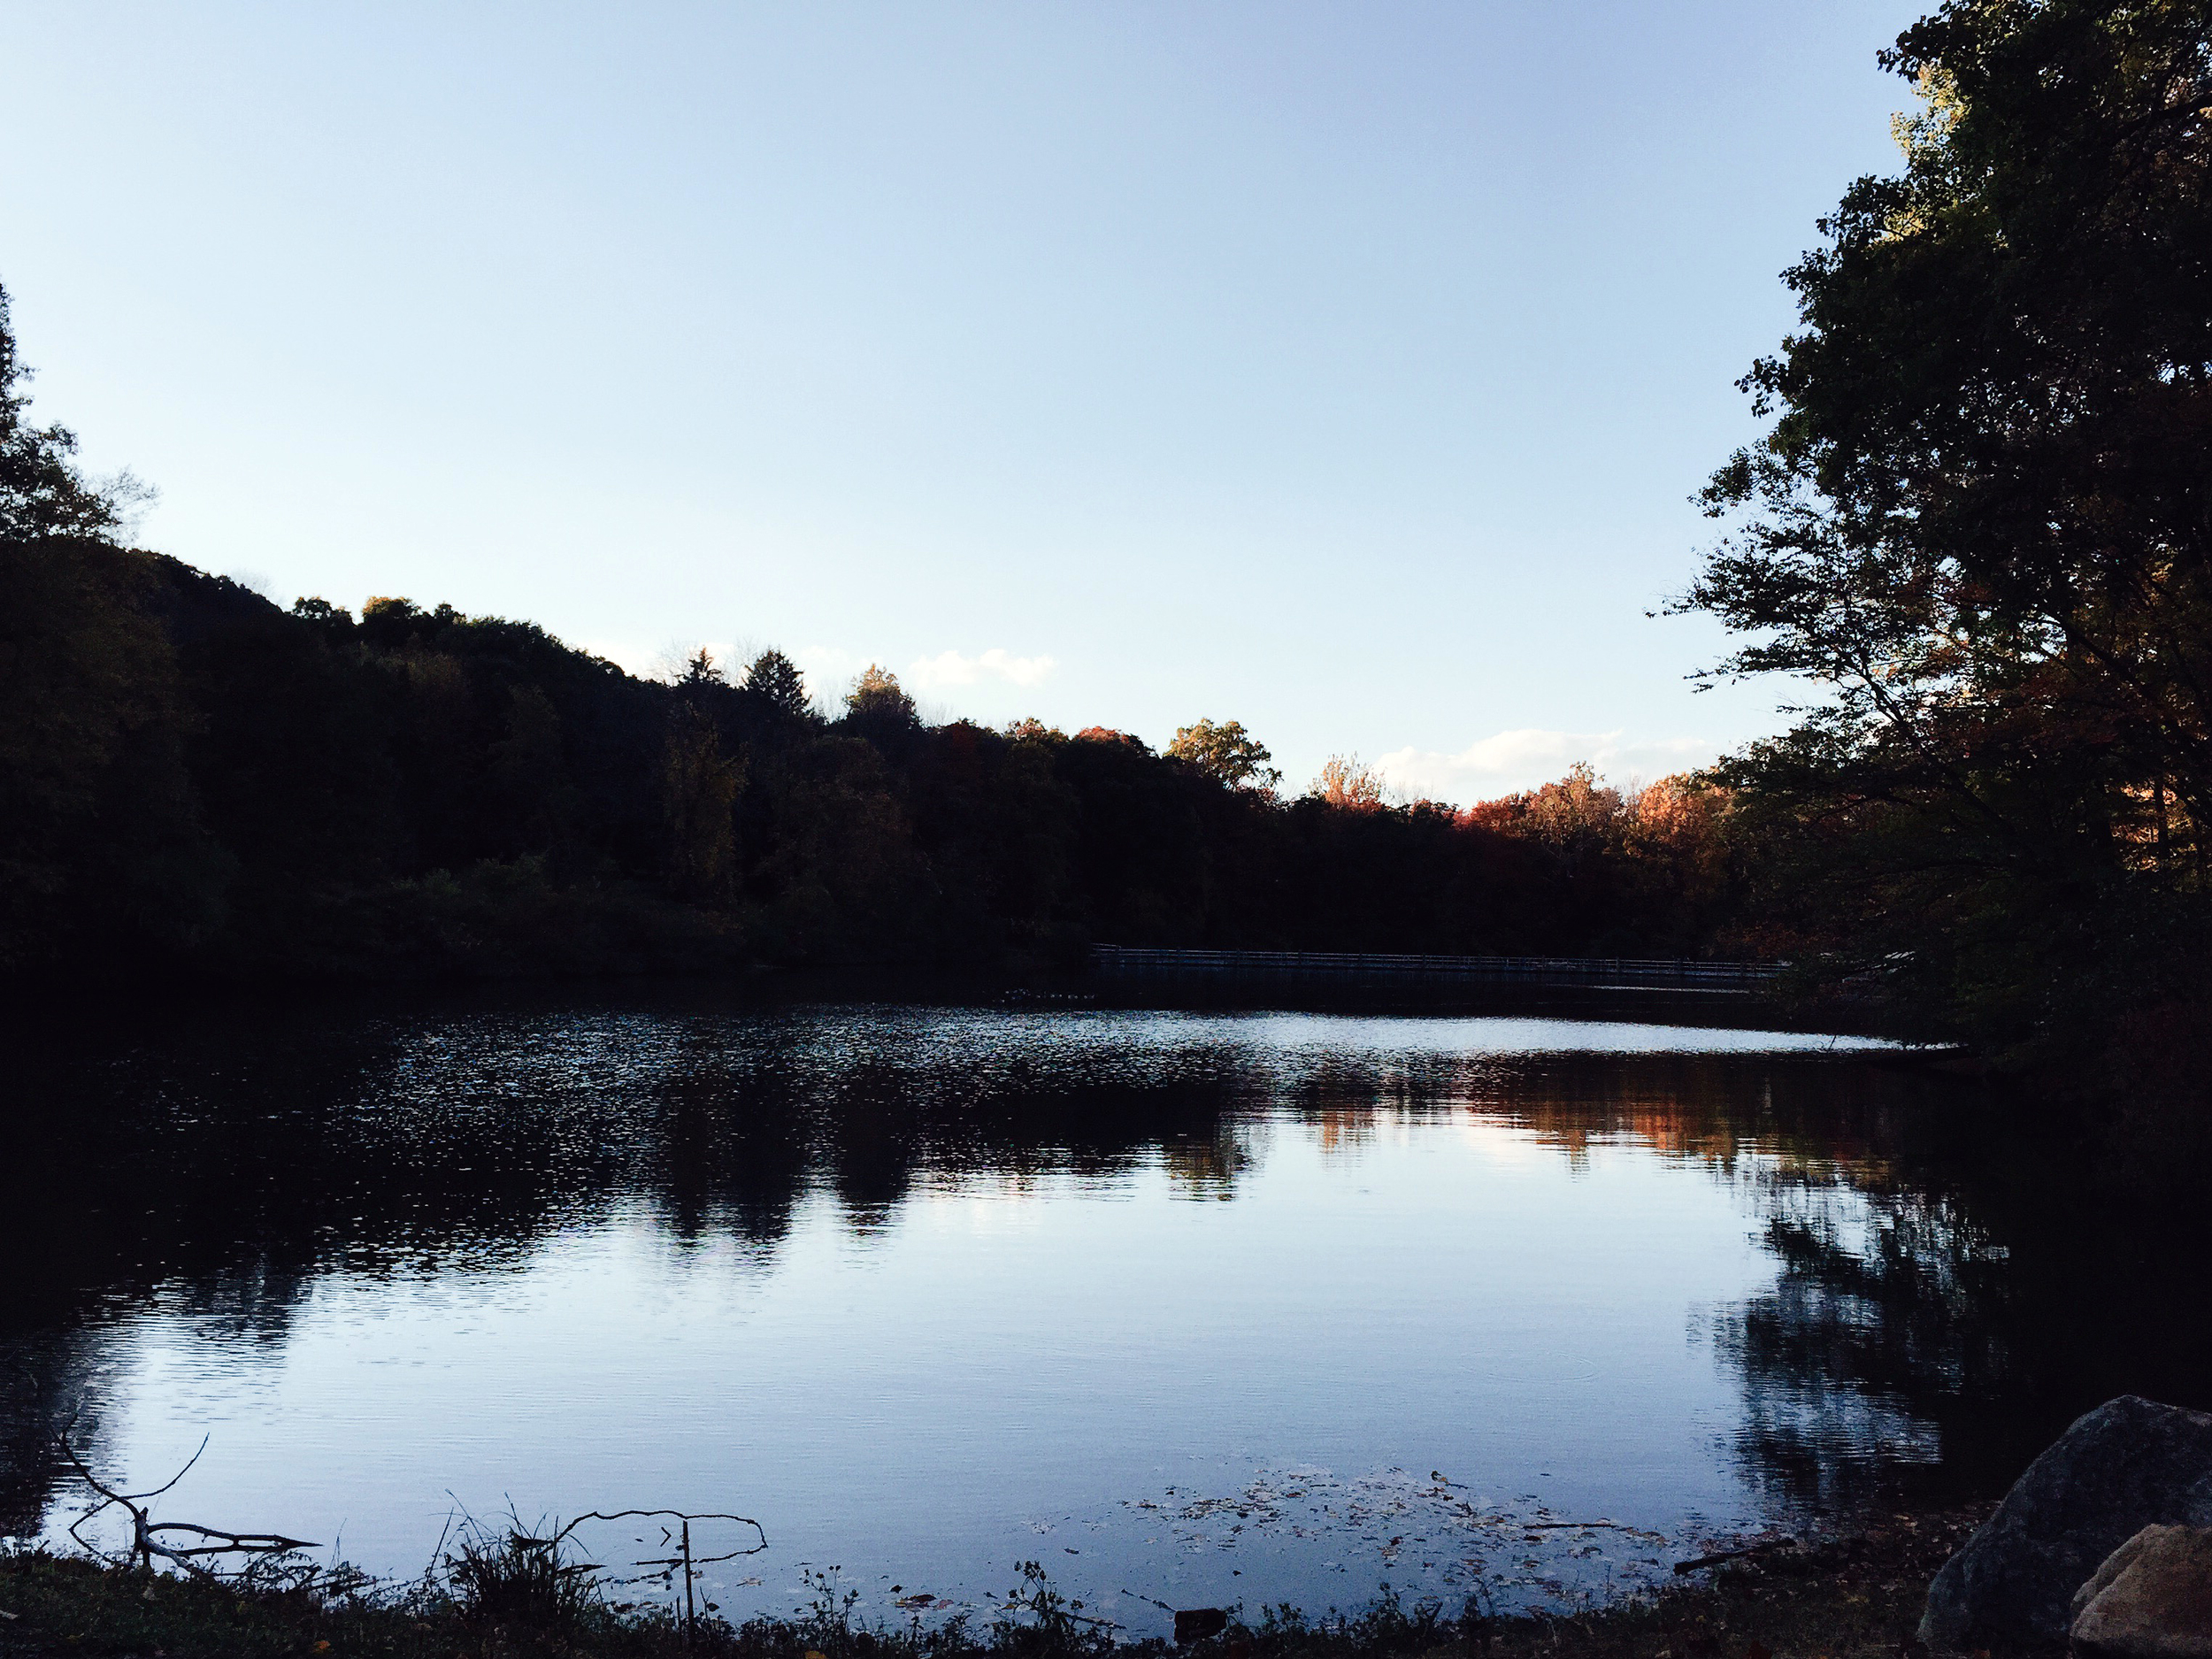 A shot I took of the main lake at the park before heading home around 5:30 PM on 10/8. It was the latest I had stayed.